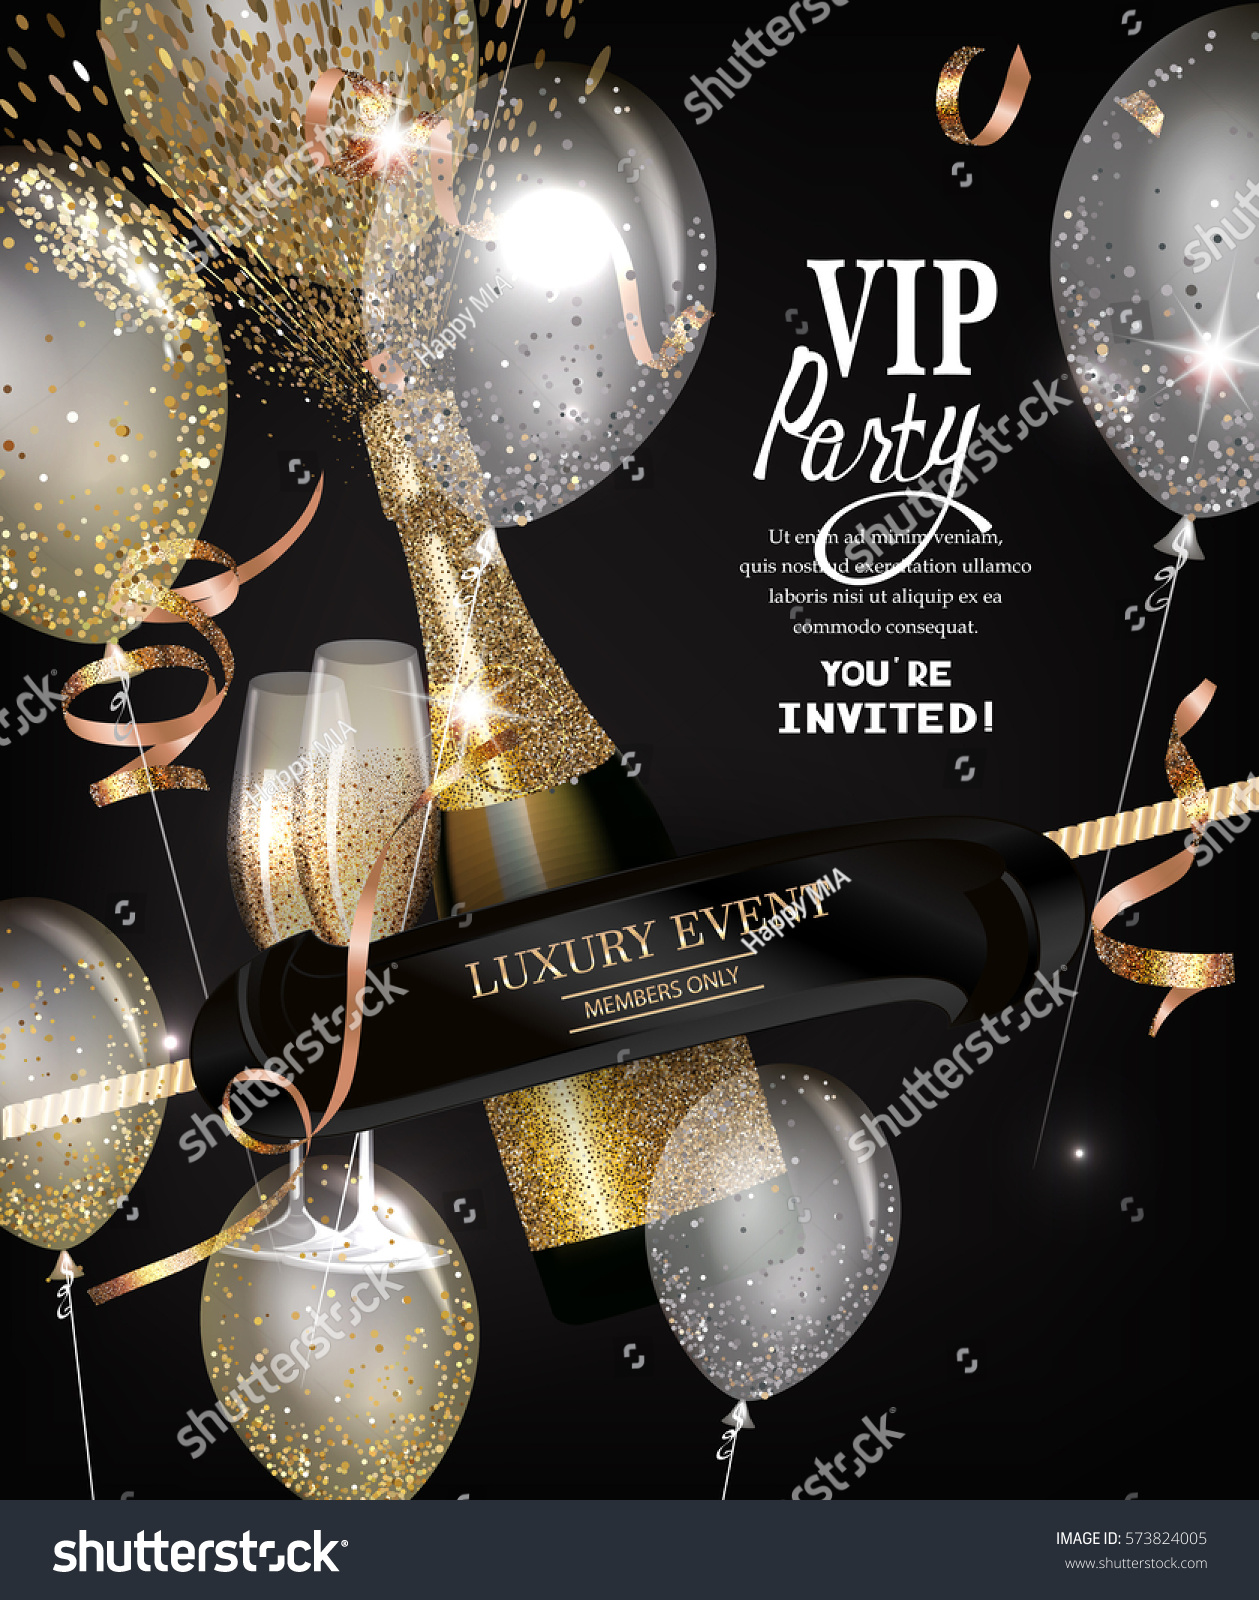 Vip Private View: Vip Party Invitation Card Bottle Champagne Stock Vector